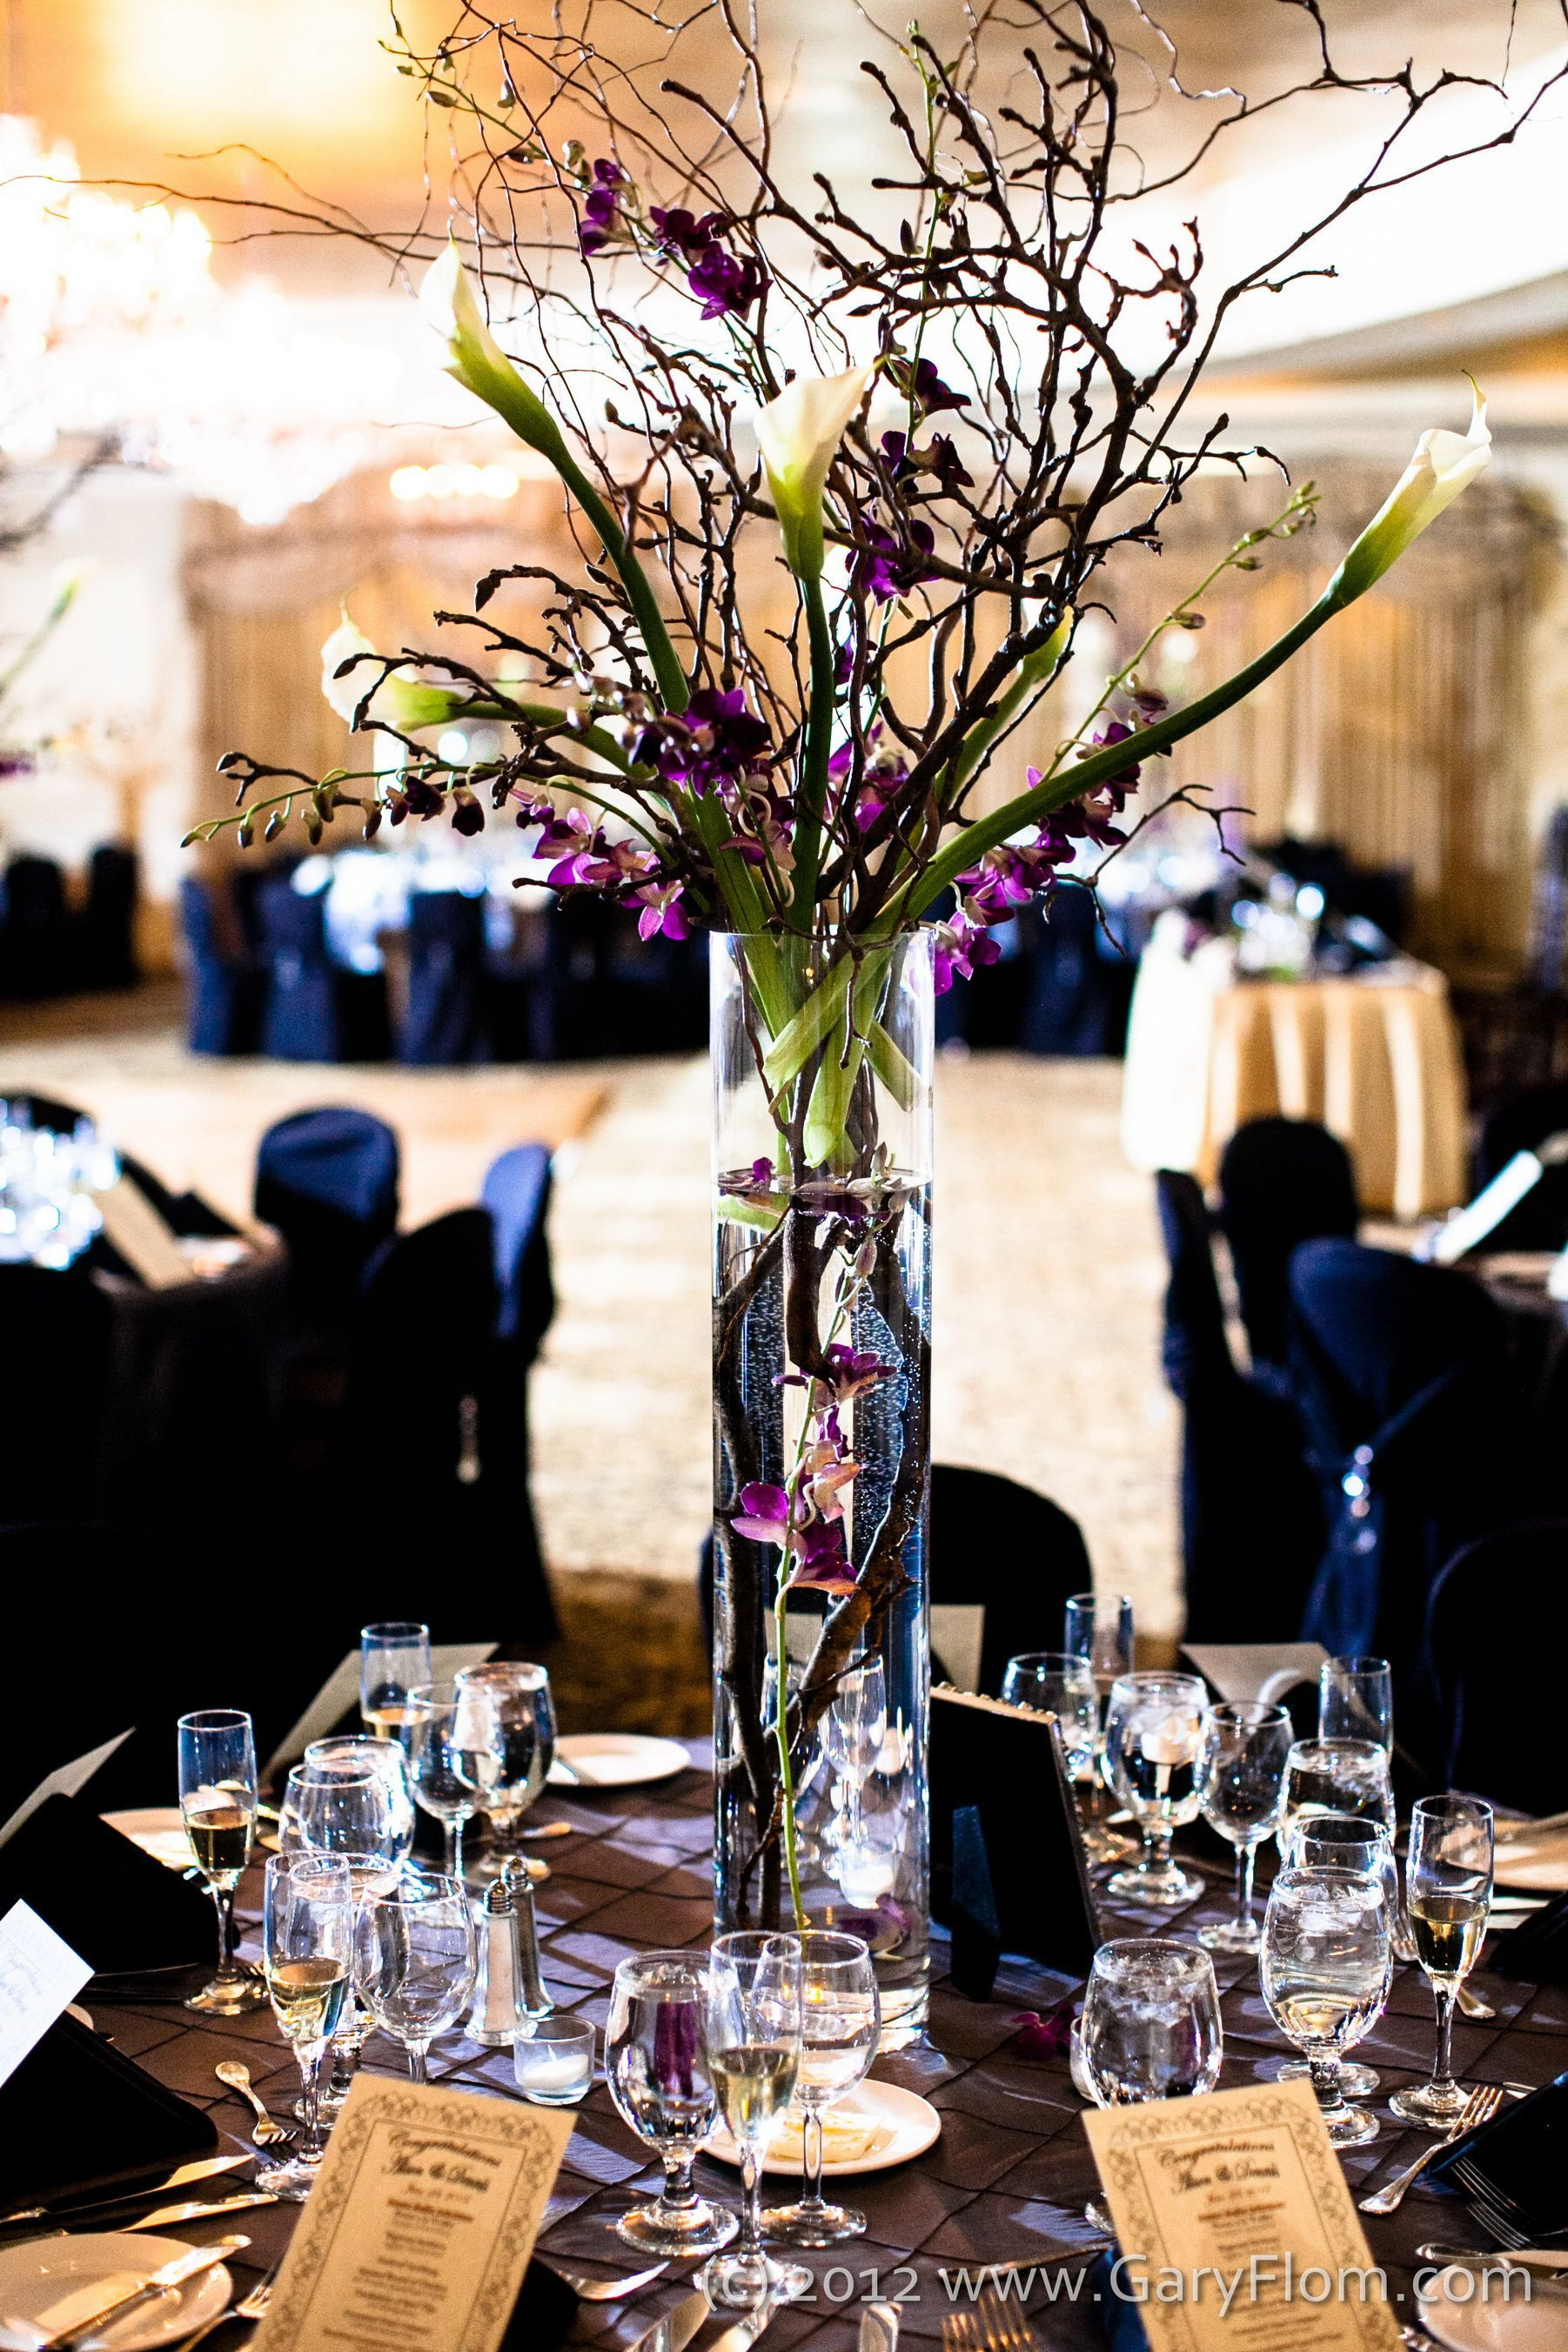 26 Stunning Stemmed Cylinder Vases 2021 free download stemmed cylinder vases of tall branches for vases beautiful centerpieces 6ft tall magnolia for tall branches for vases beautiful centerpieces 6ft tall magnolia branches curly willow stems ca